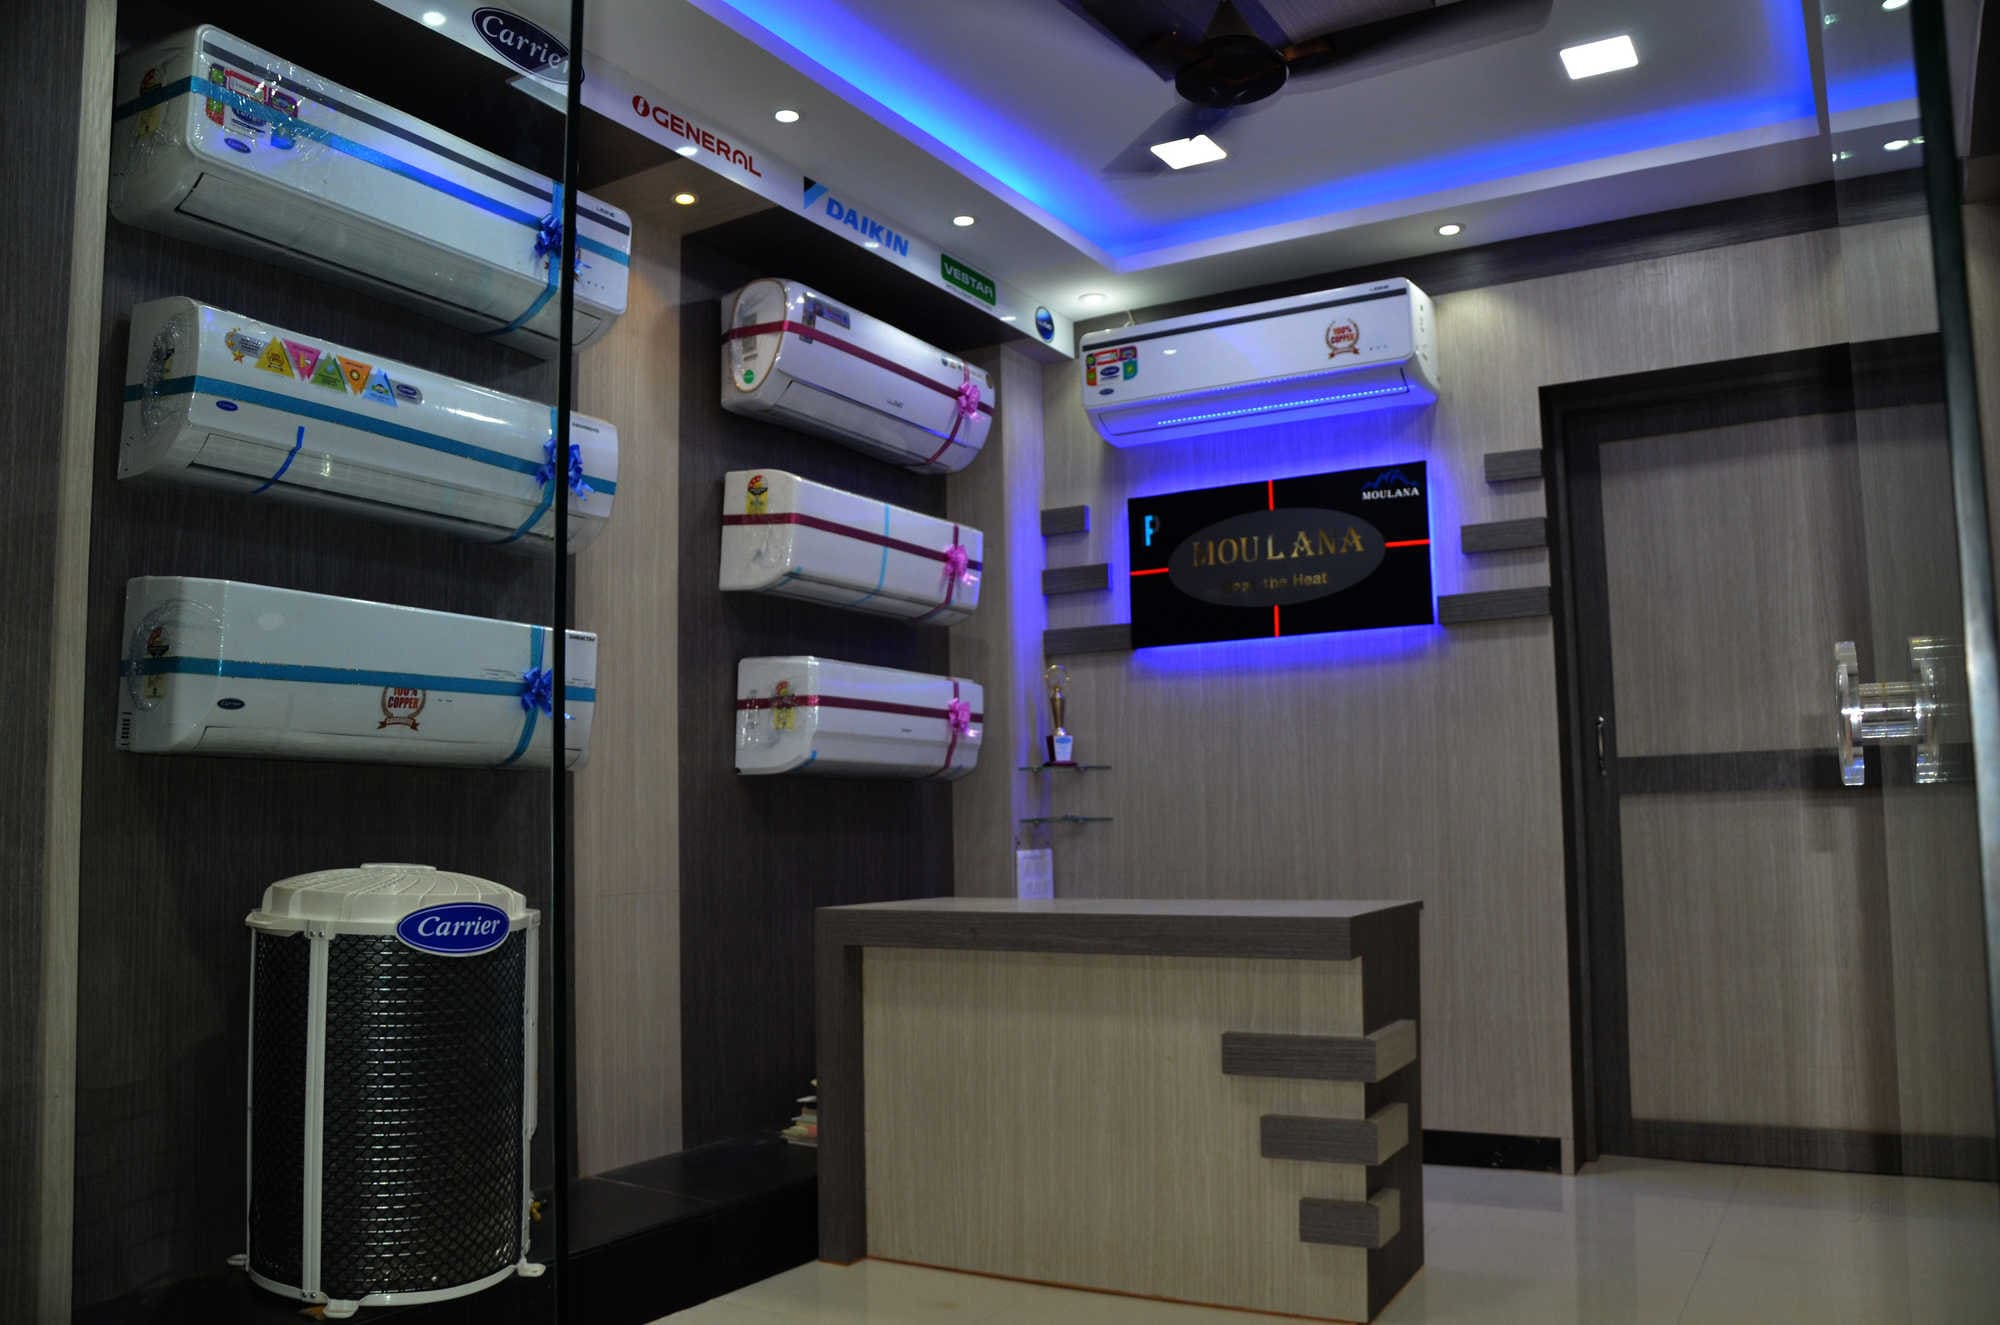 Top 10 AC Shops in Sivaganga - Best AC Dealers - Justdial